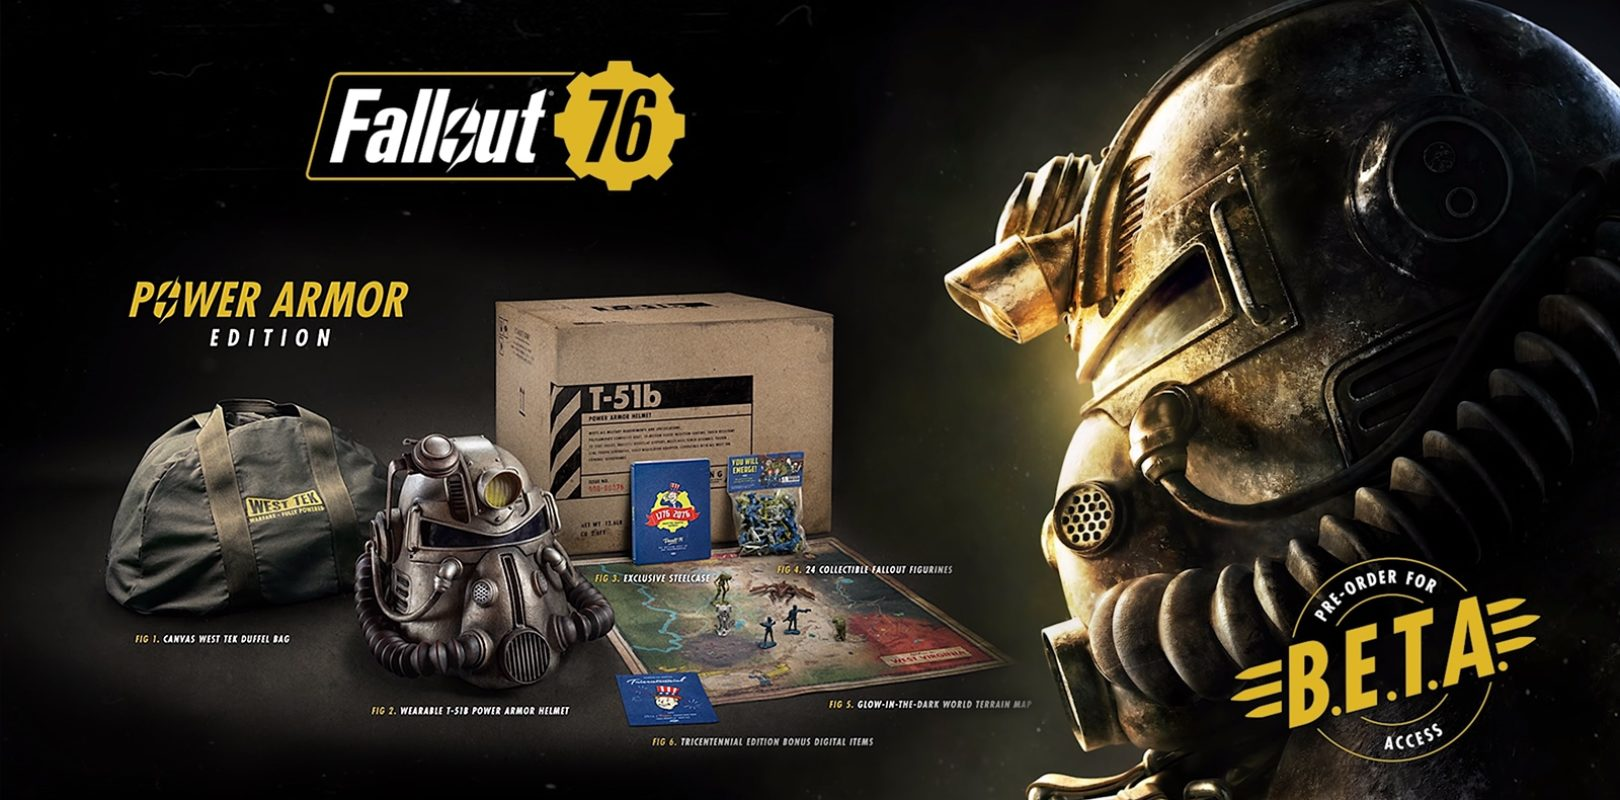 Best Fallout 76 Power Armor Edition Pre-Order Price | PrimeWikis